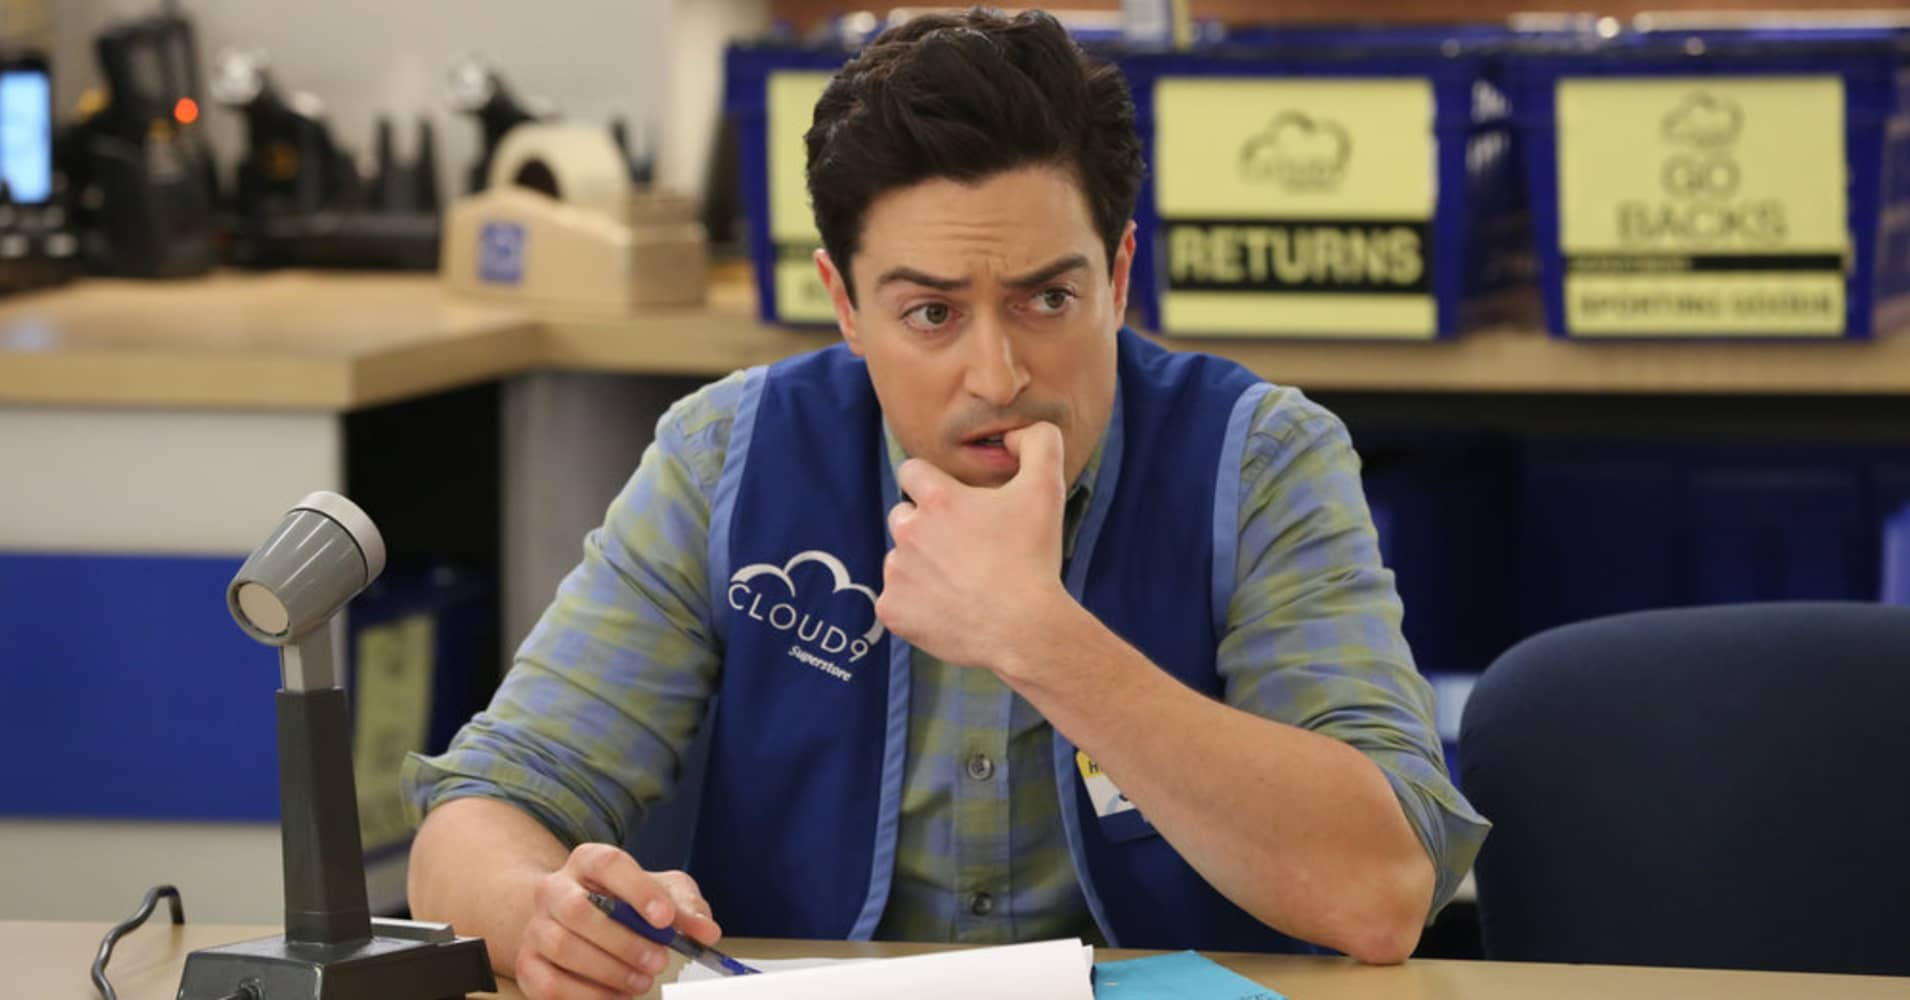 Ben Feldman as Jonah in Superstore